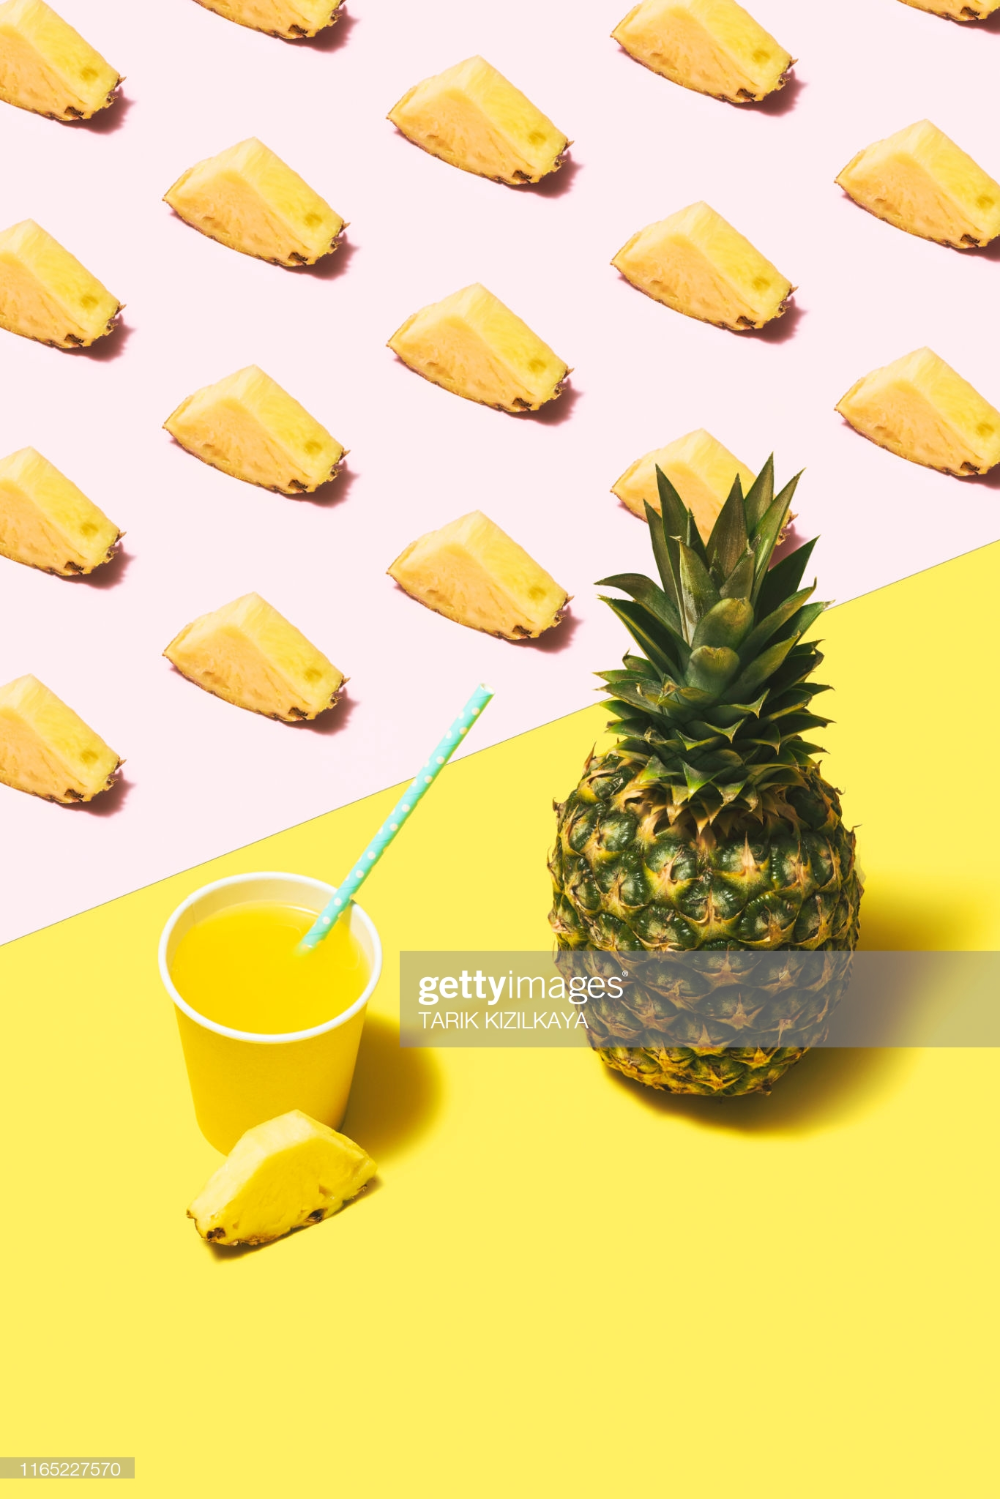 Pineapple Juice Flat Lay On Pink And Yellow Background In 2020 Yellow Background Pineapple Pineapple Juice